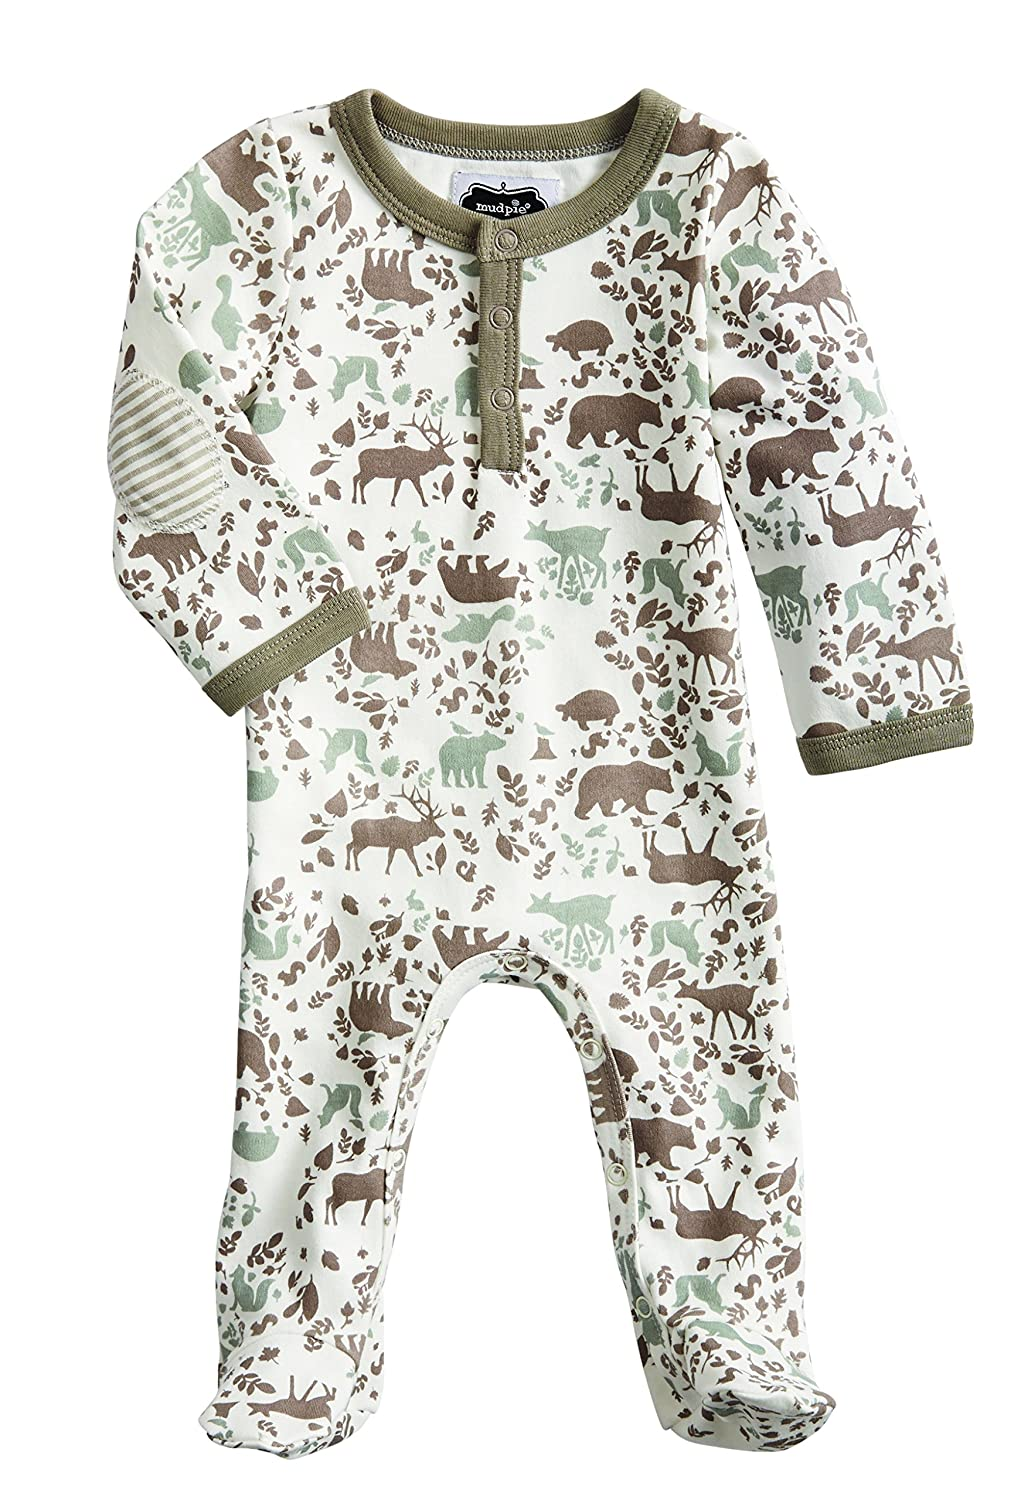 Mud Pie Forest Friends Newborn Baby Boy Woodland Footed Sleeper 1032284